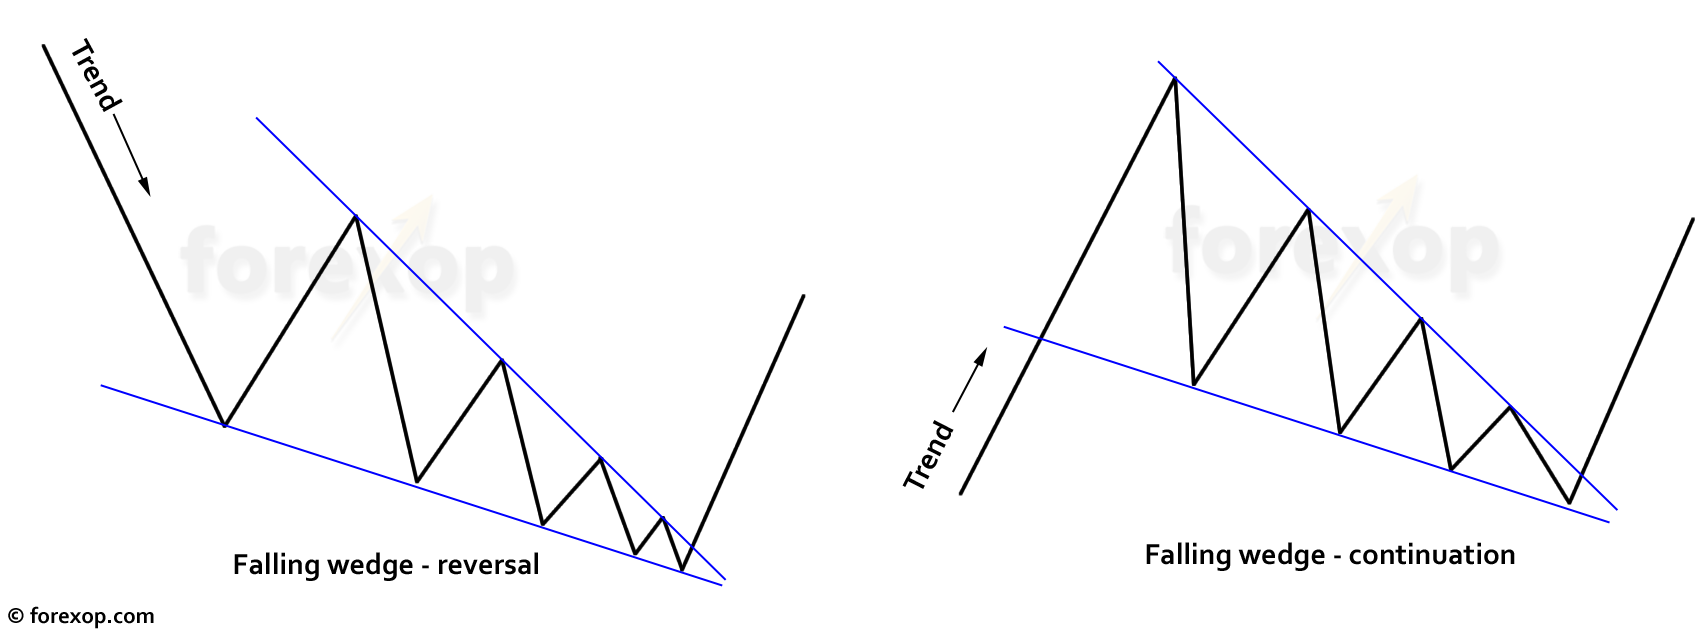 Figure 1: Falling wedge – continuation and reversals